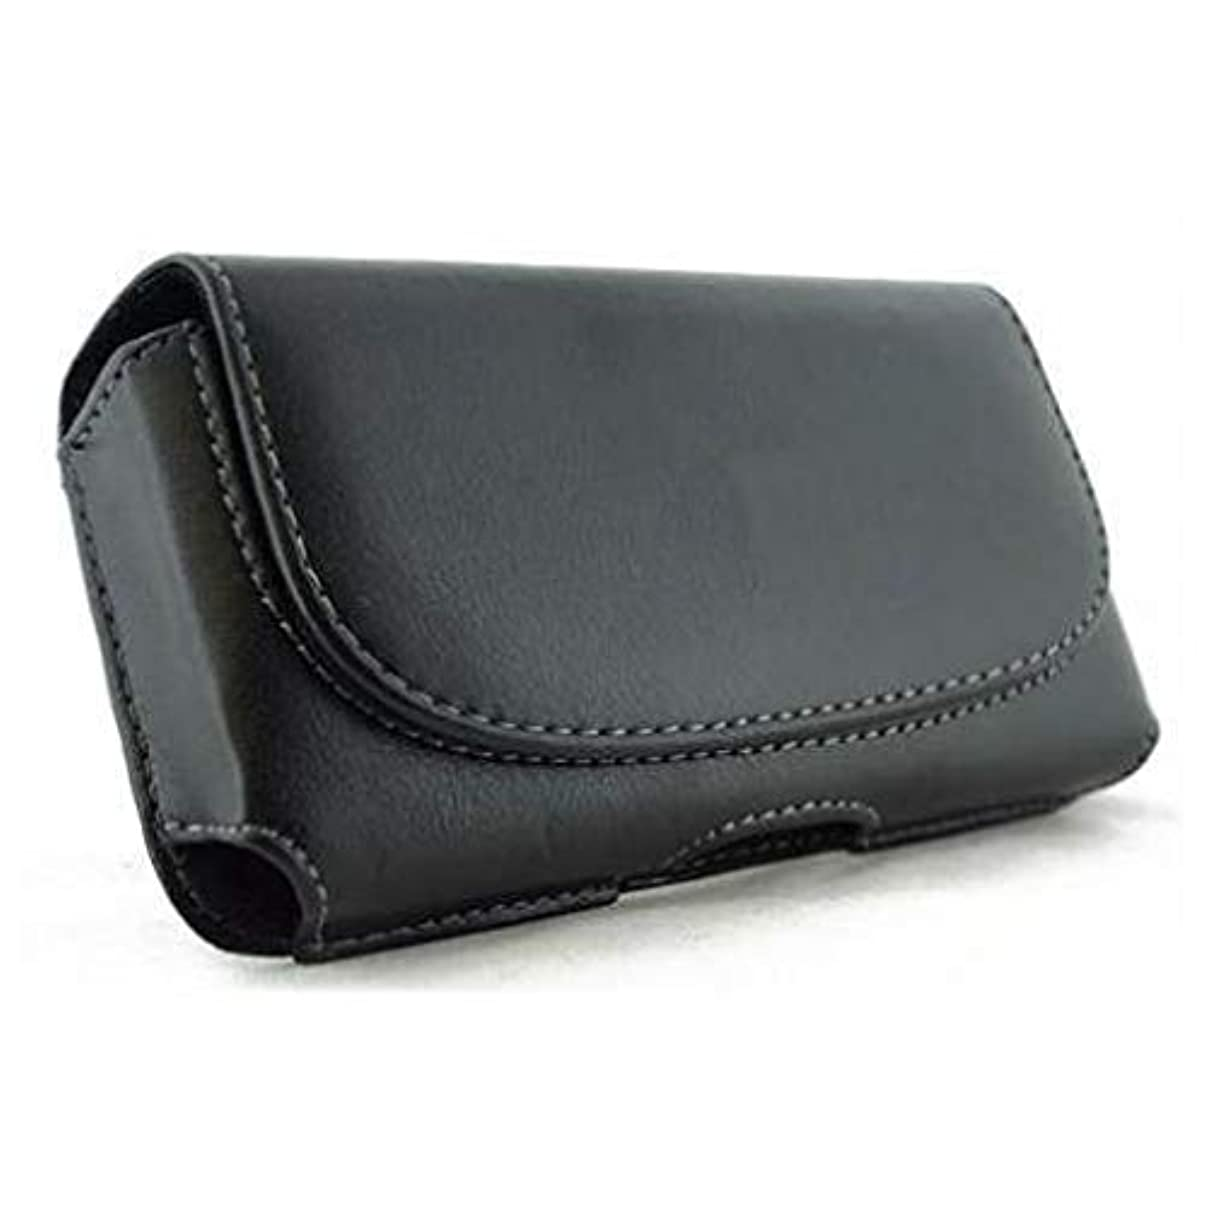 Black Leather Phone Case Cover Pouch Belt Clip Loops Compatible with Verizon HTC Droid Incredible 2 - Verizon LG Exalt LTE - Verizon Motorola Droid 3